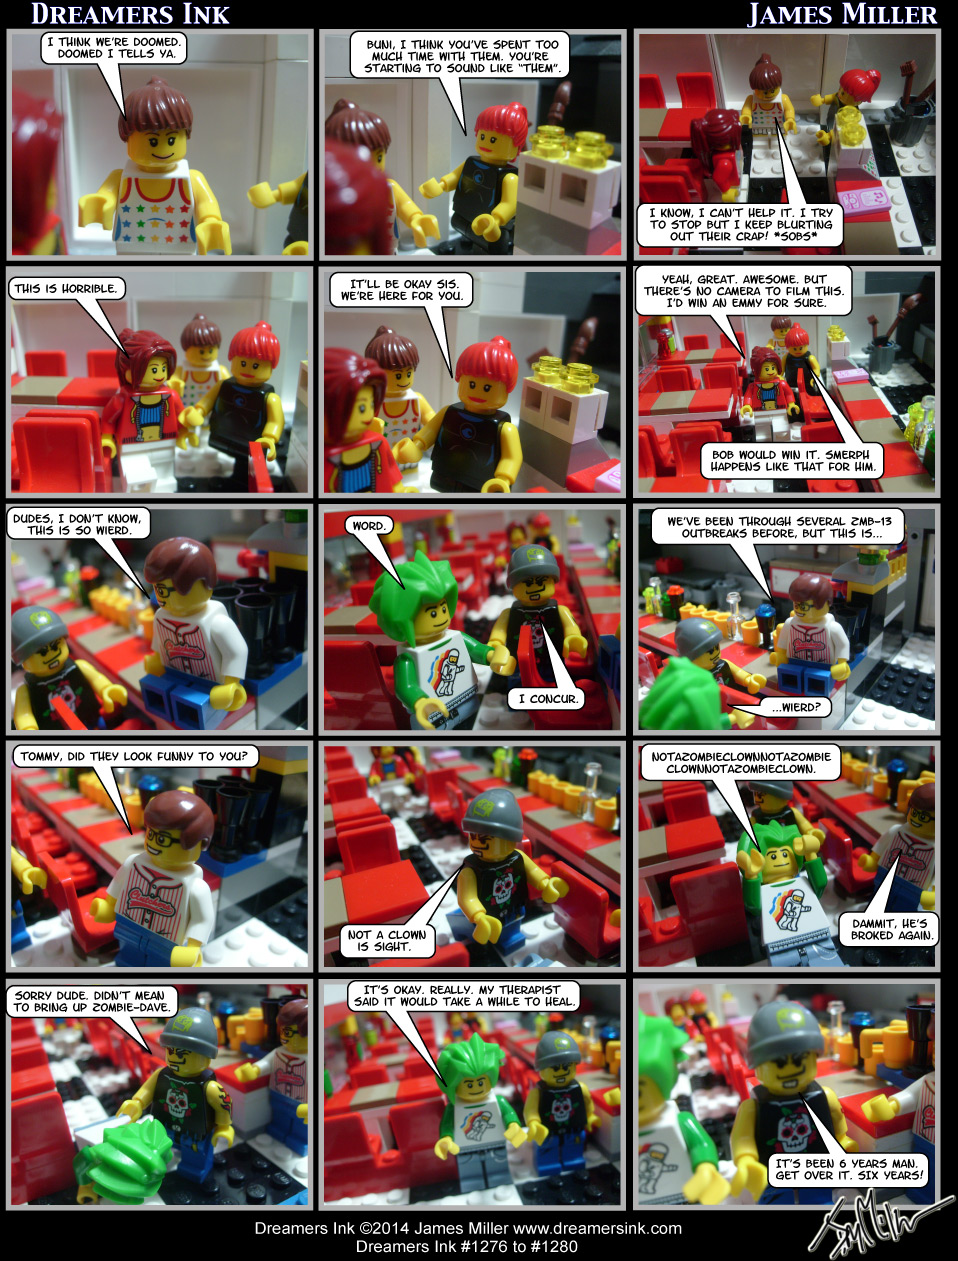 Strips #1276 To #1280